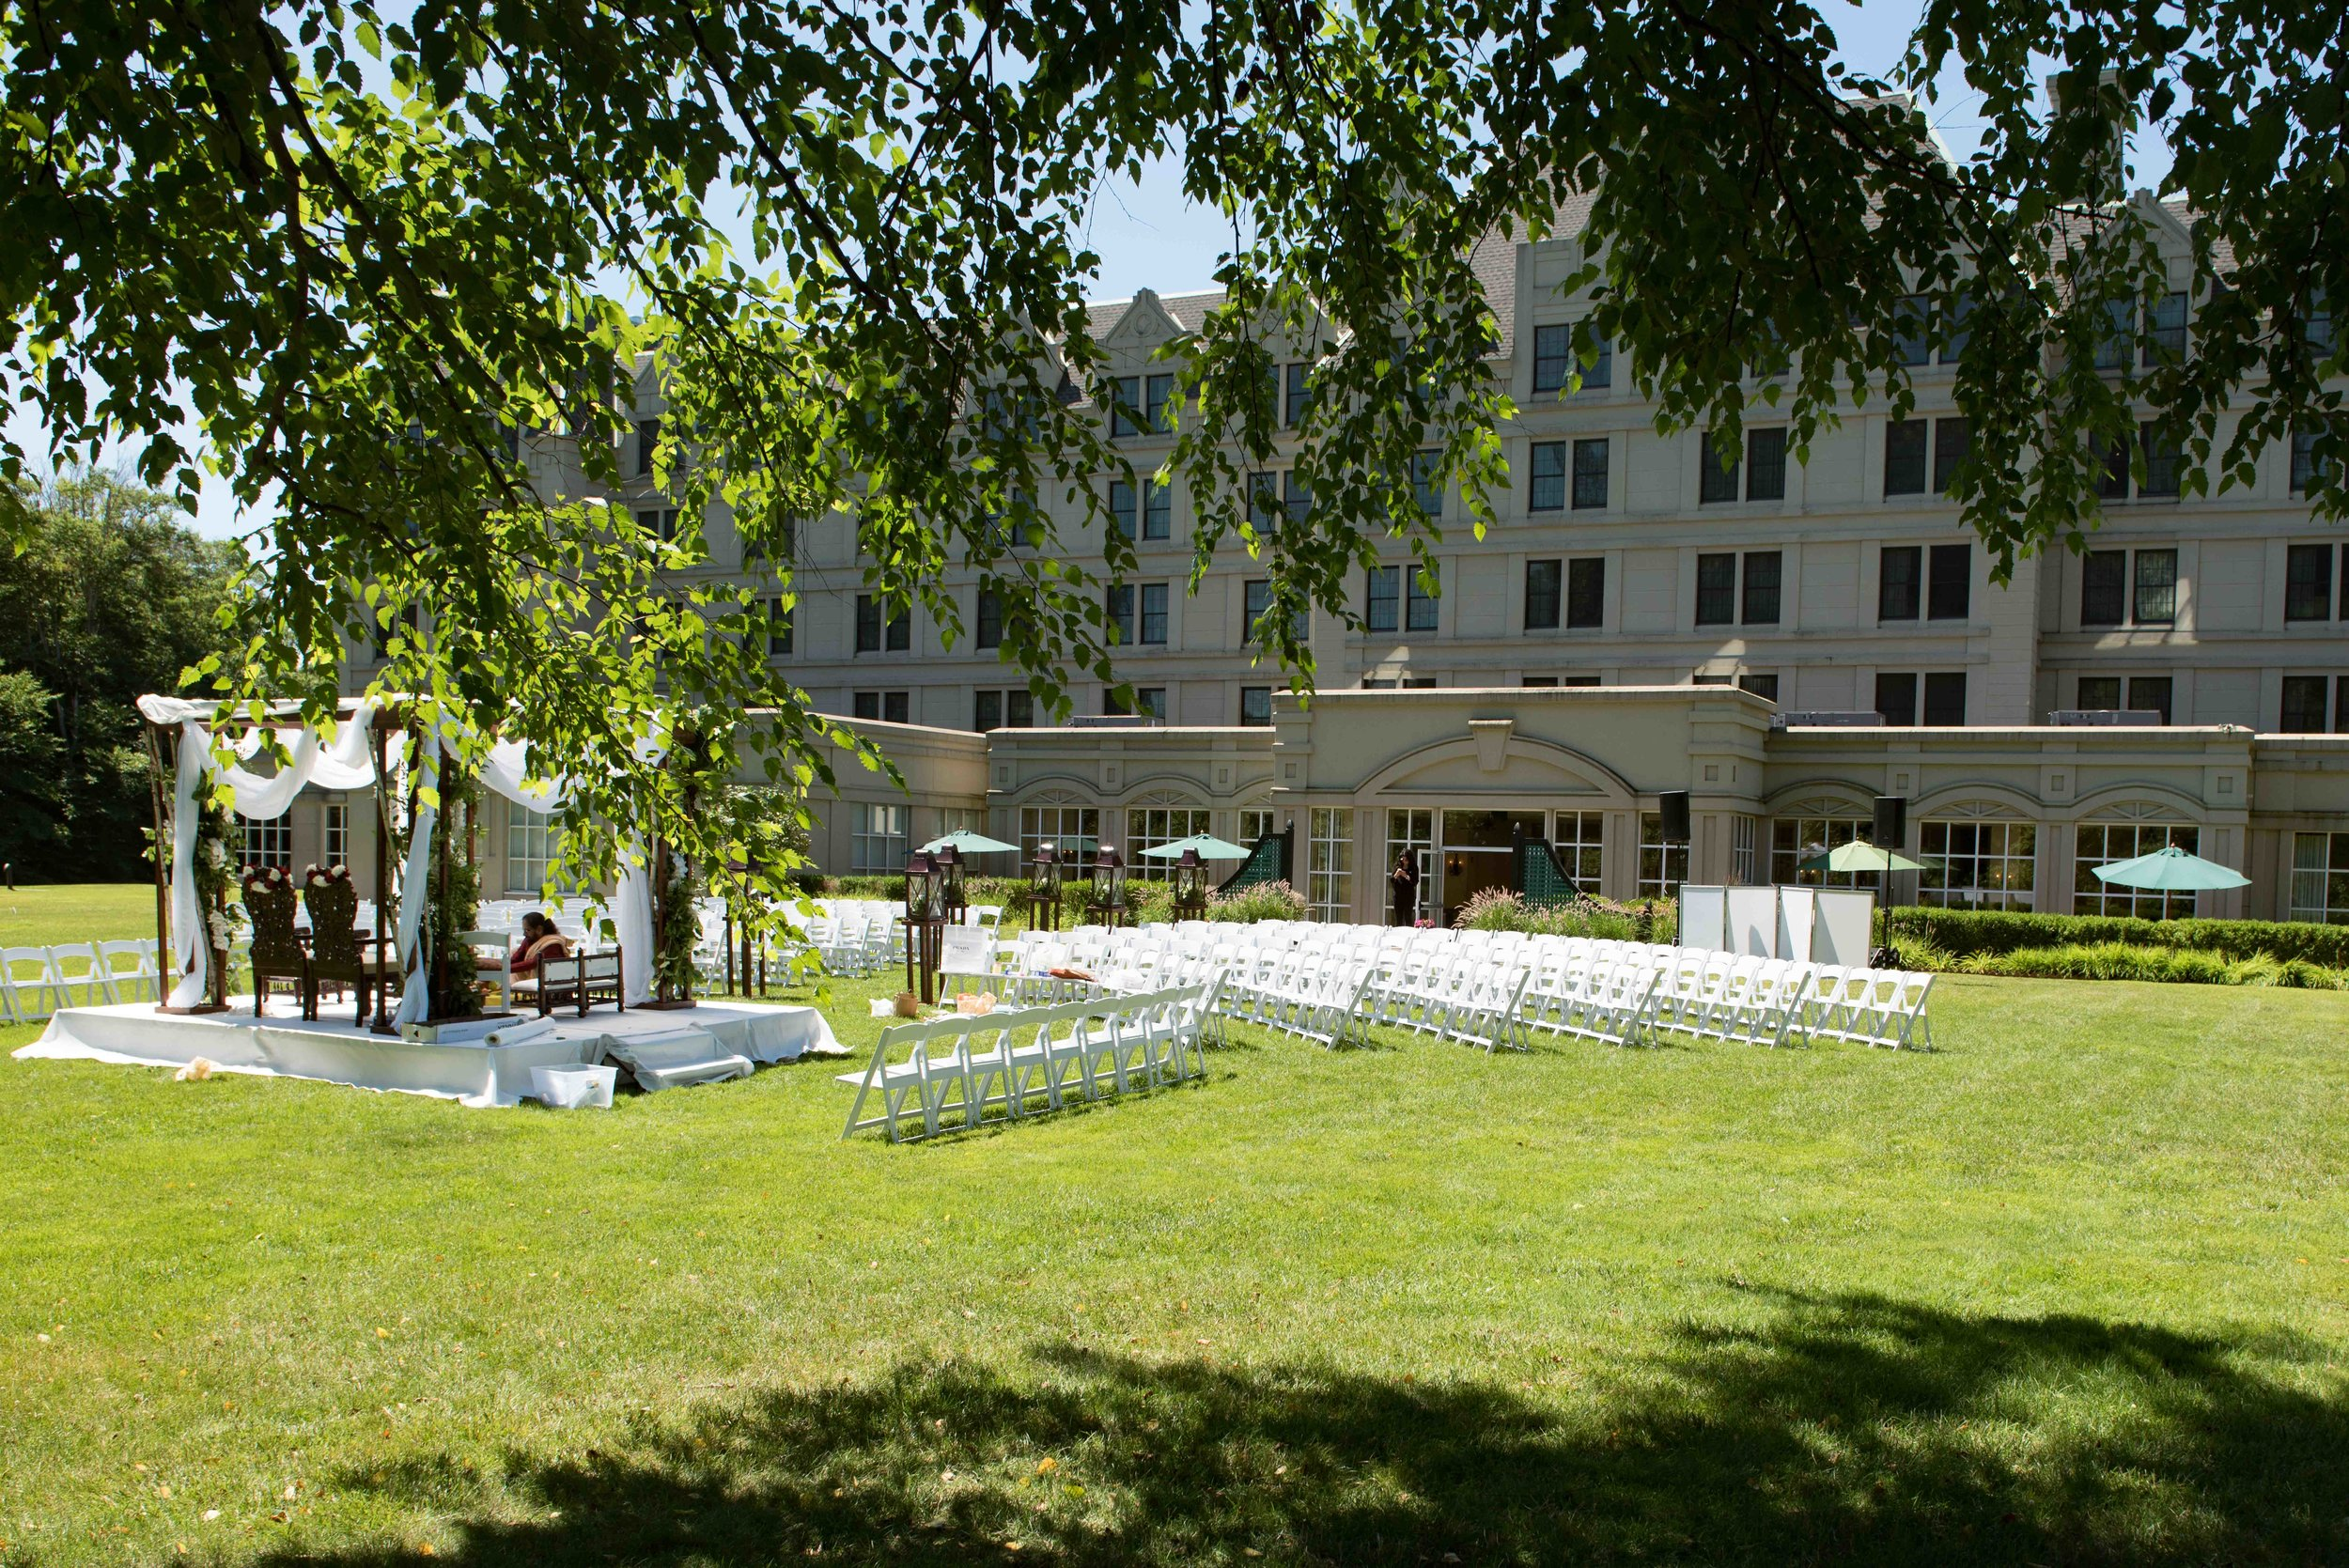 Wedding Photography at The Hilton Pearl River New Jersey. Photo by Jason Giordano Wedding and Event Photographer.